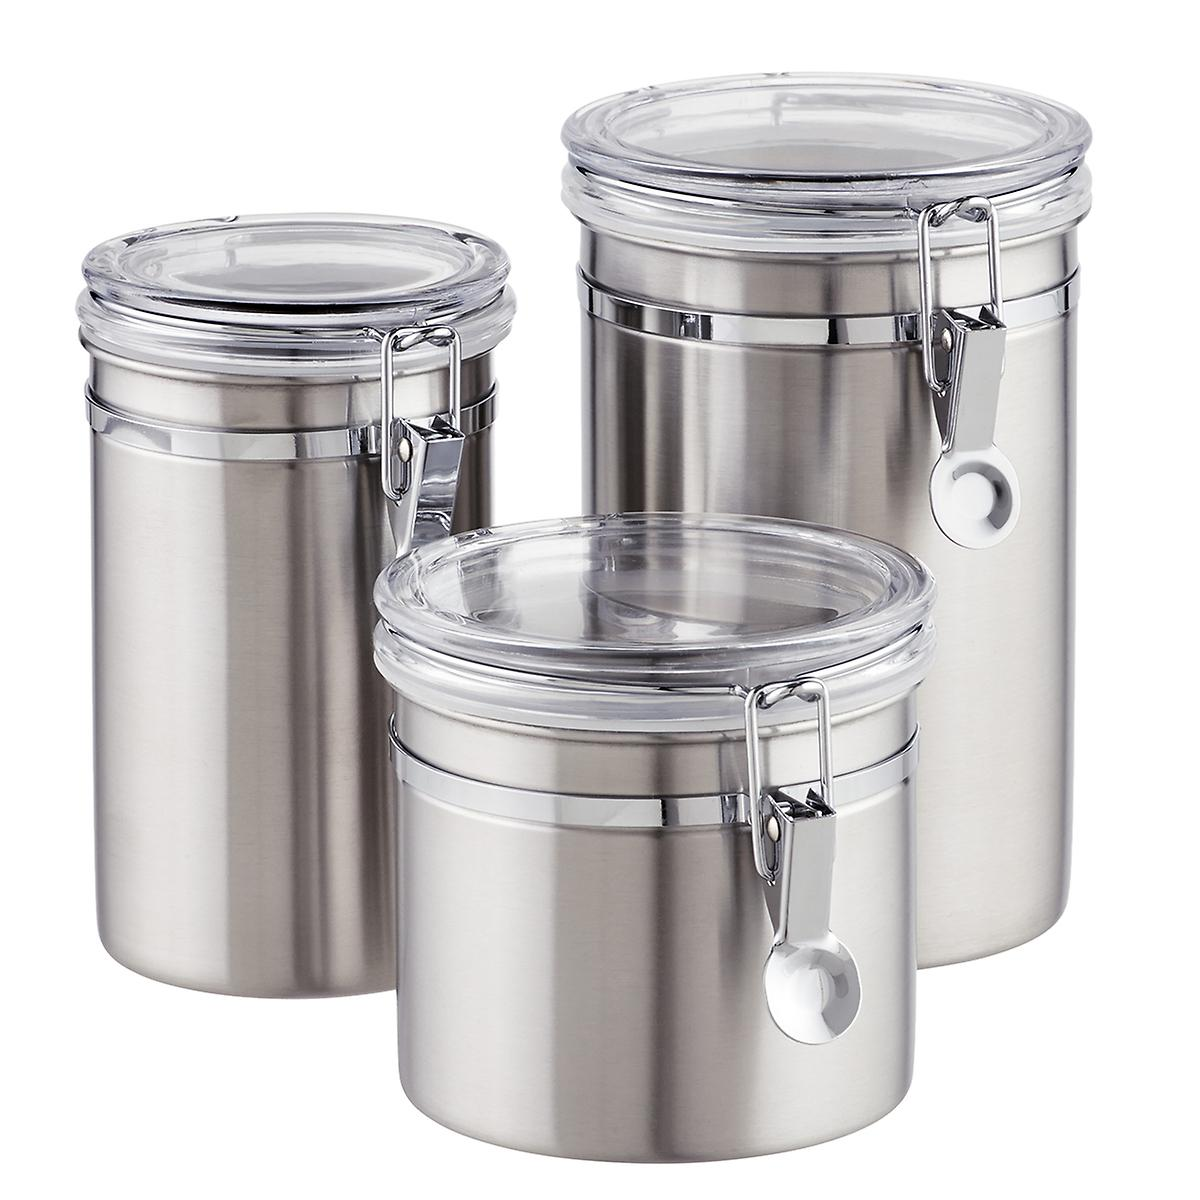 Stainless Steel Canisters Brushed Stainless Steel Canisters The